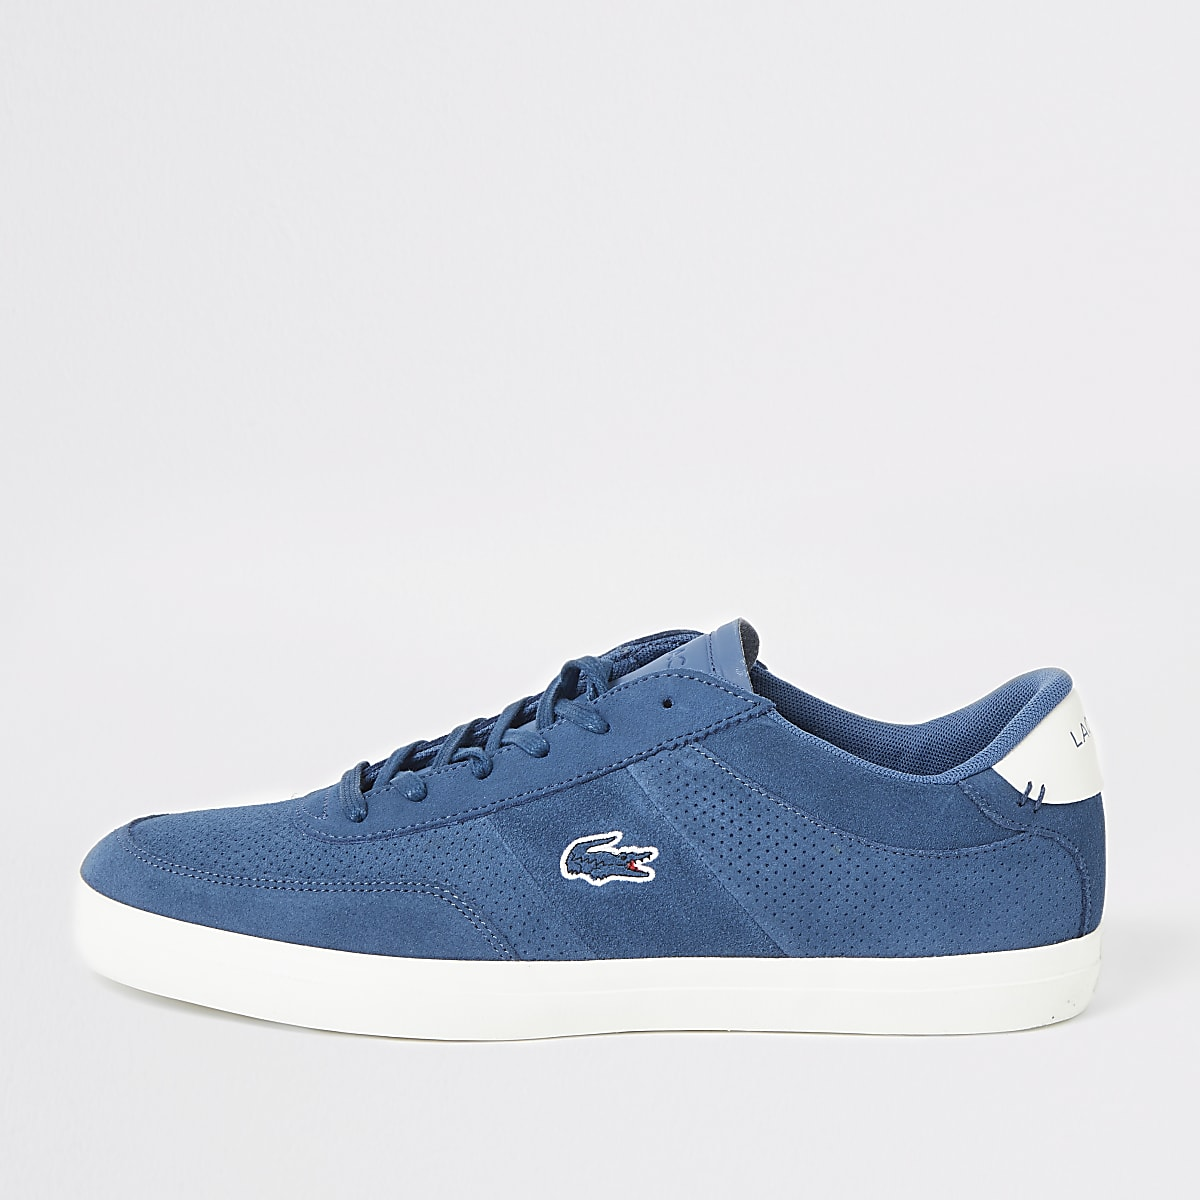 Lacoste blue Courtmaster sneakers